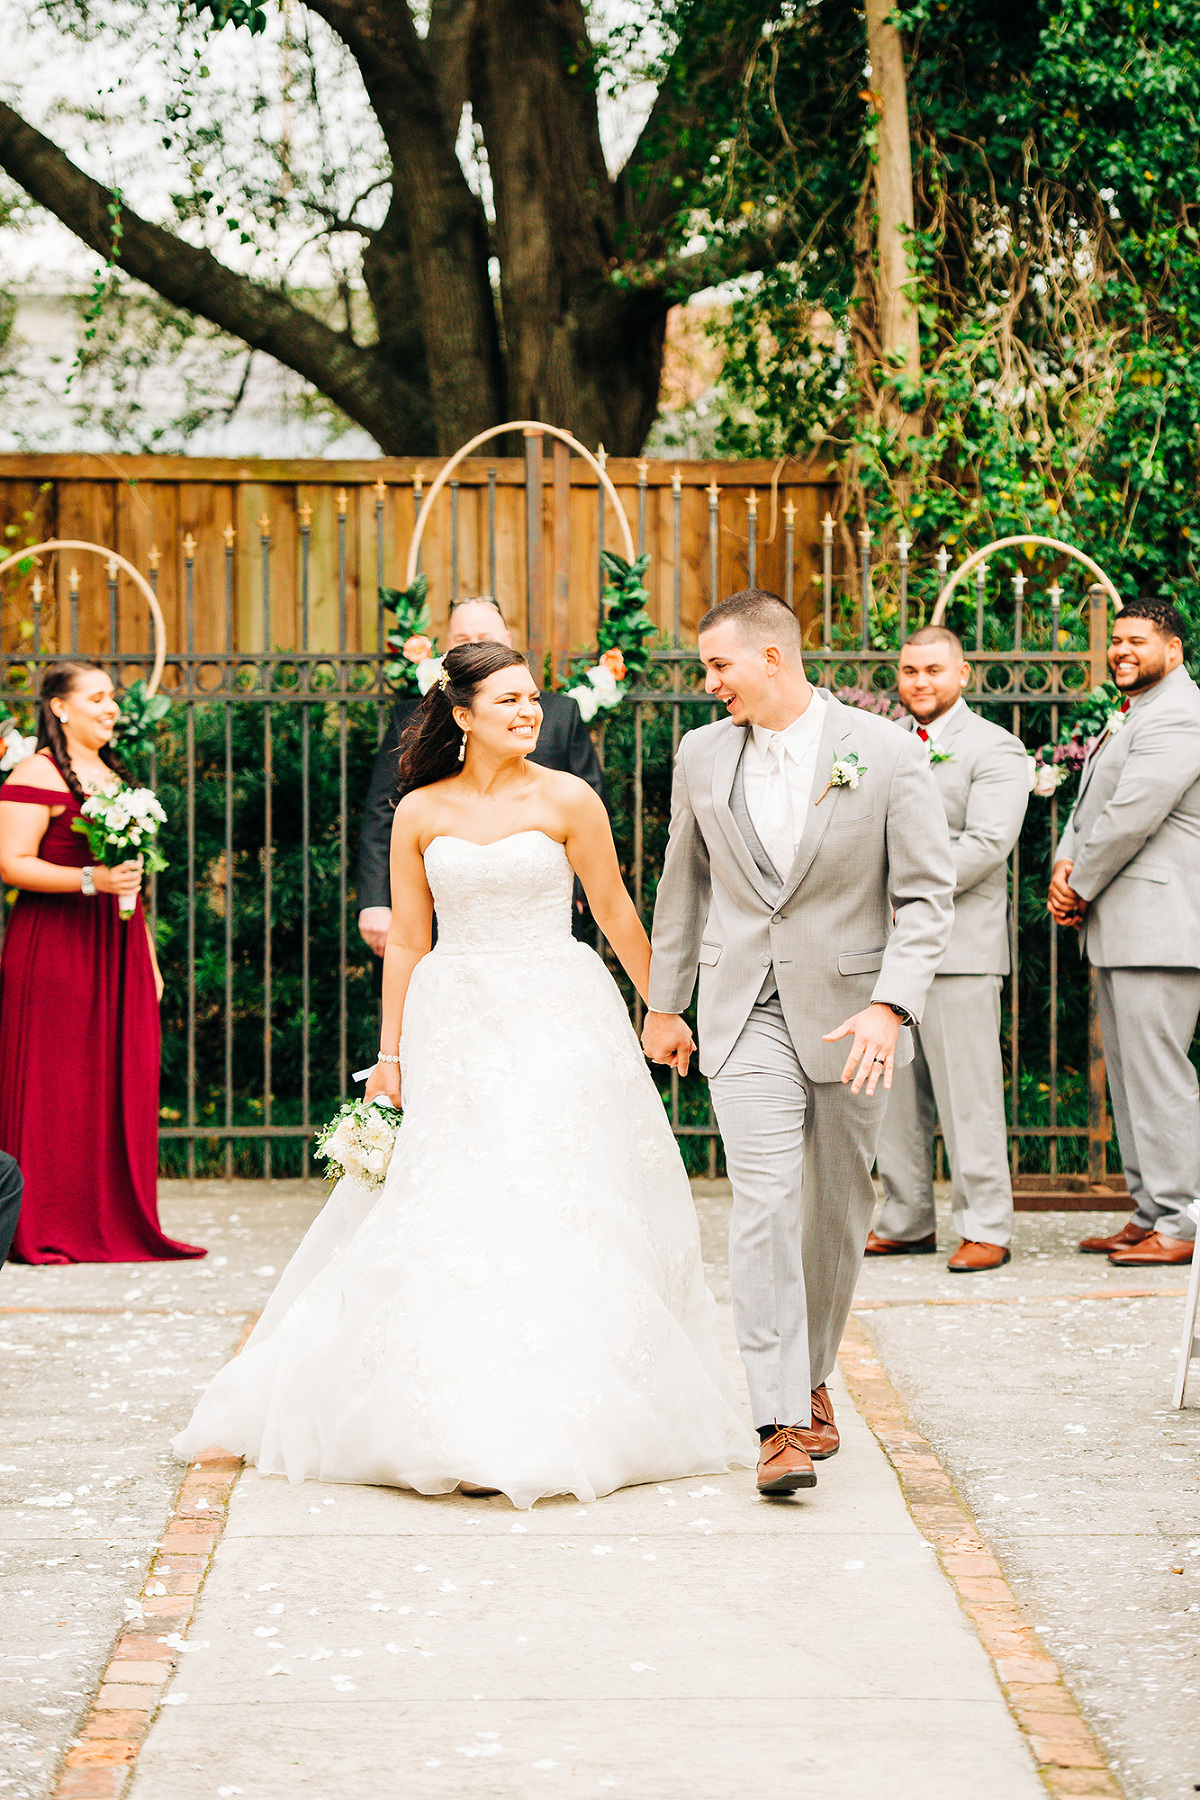 Wedding couple walking down the isle at Brooklyn Arts Center in Wilmington, North Carolina.